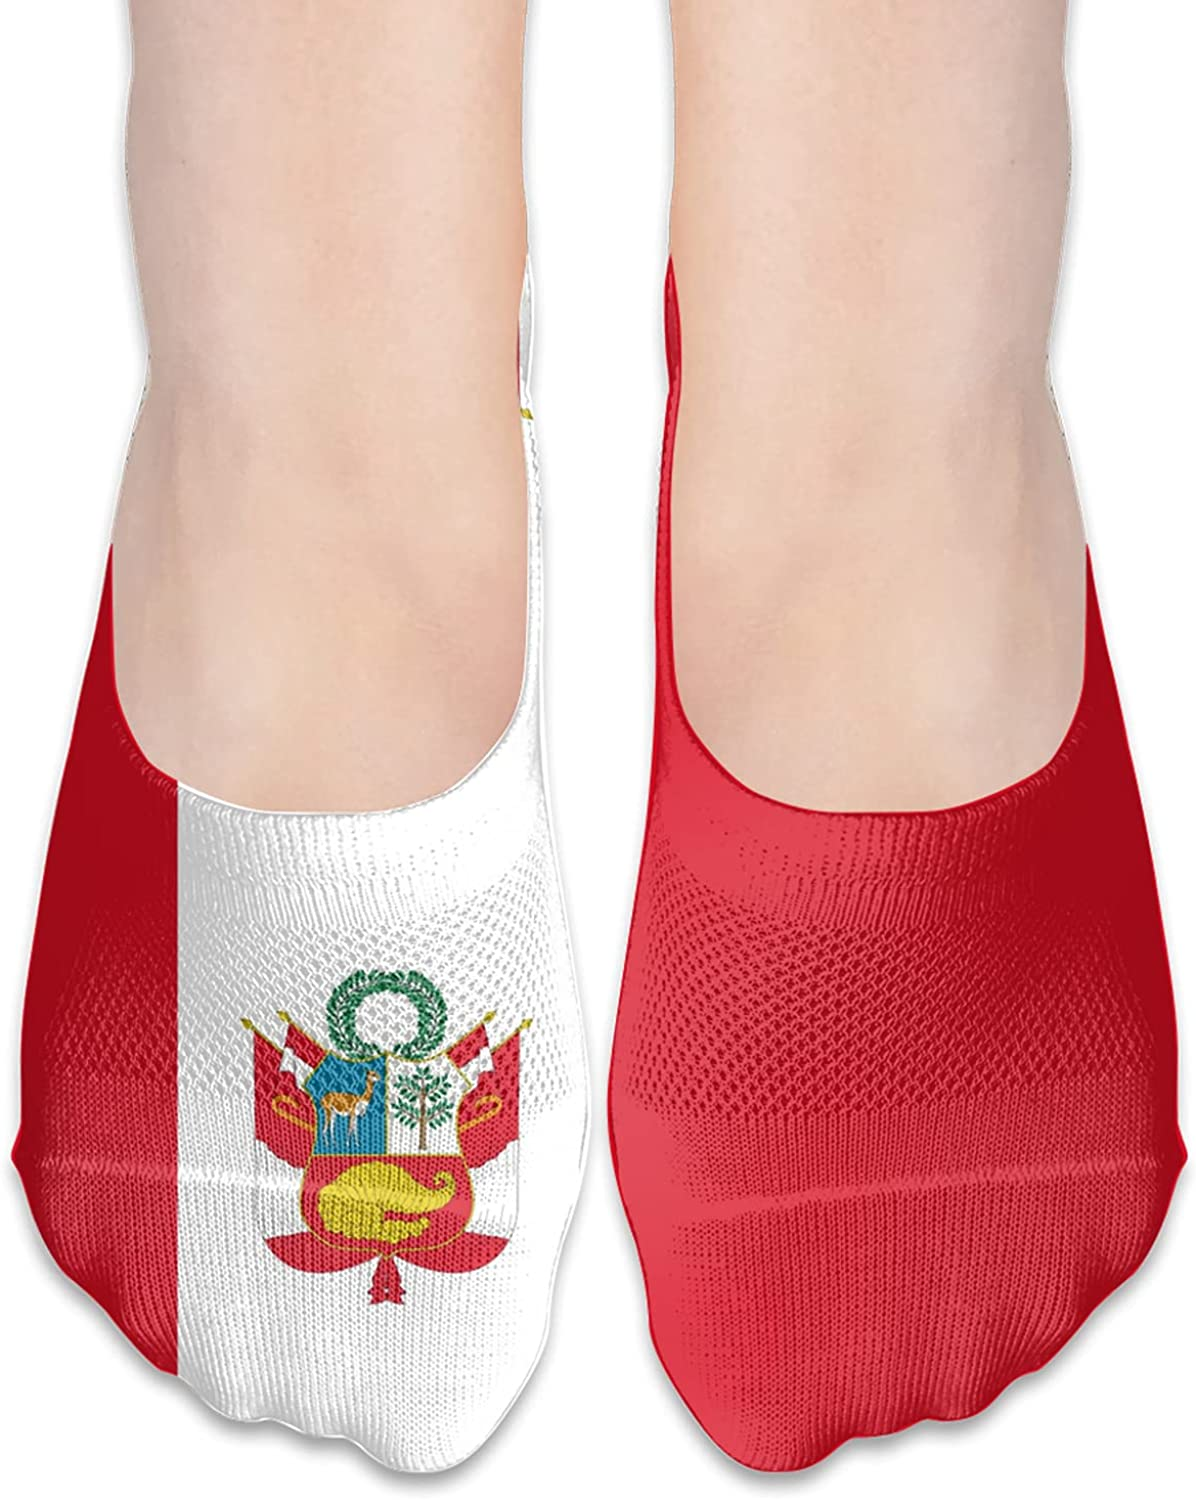 Peru Peruvian Flag Unisex Adult Breathable Liner Socks Non Slip No Show Ankle Socks Low Cut Invisible Socks